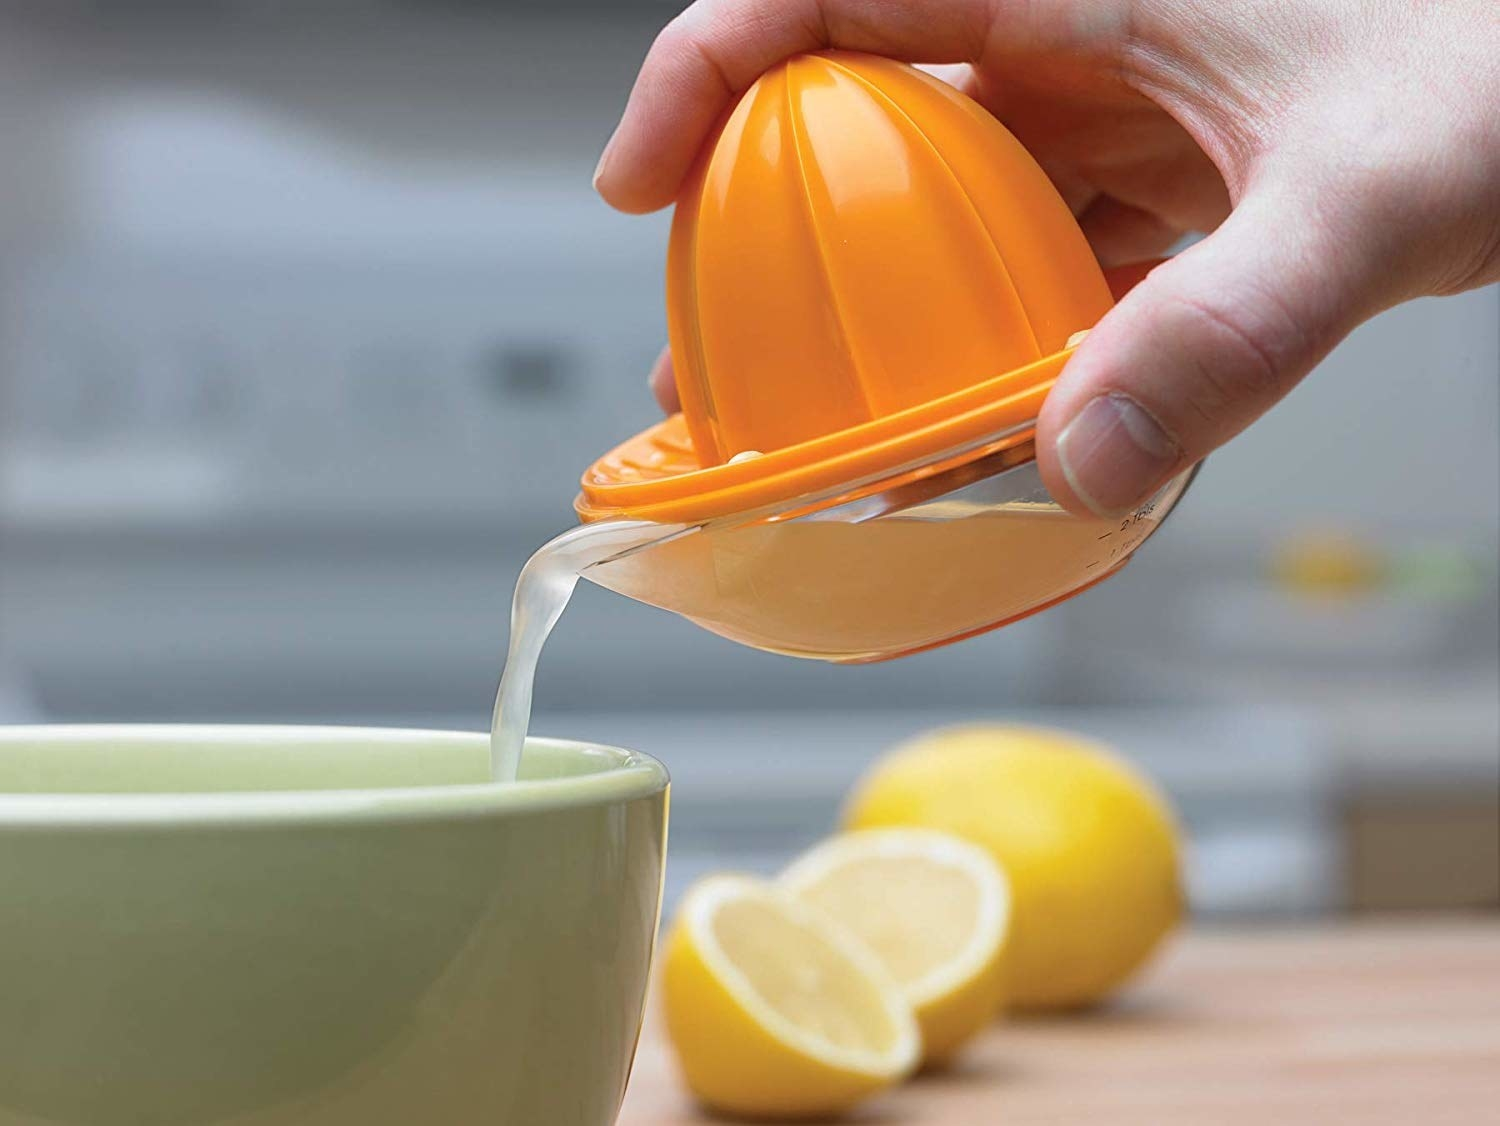 Hand pouring juice from the juicer into a bowl